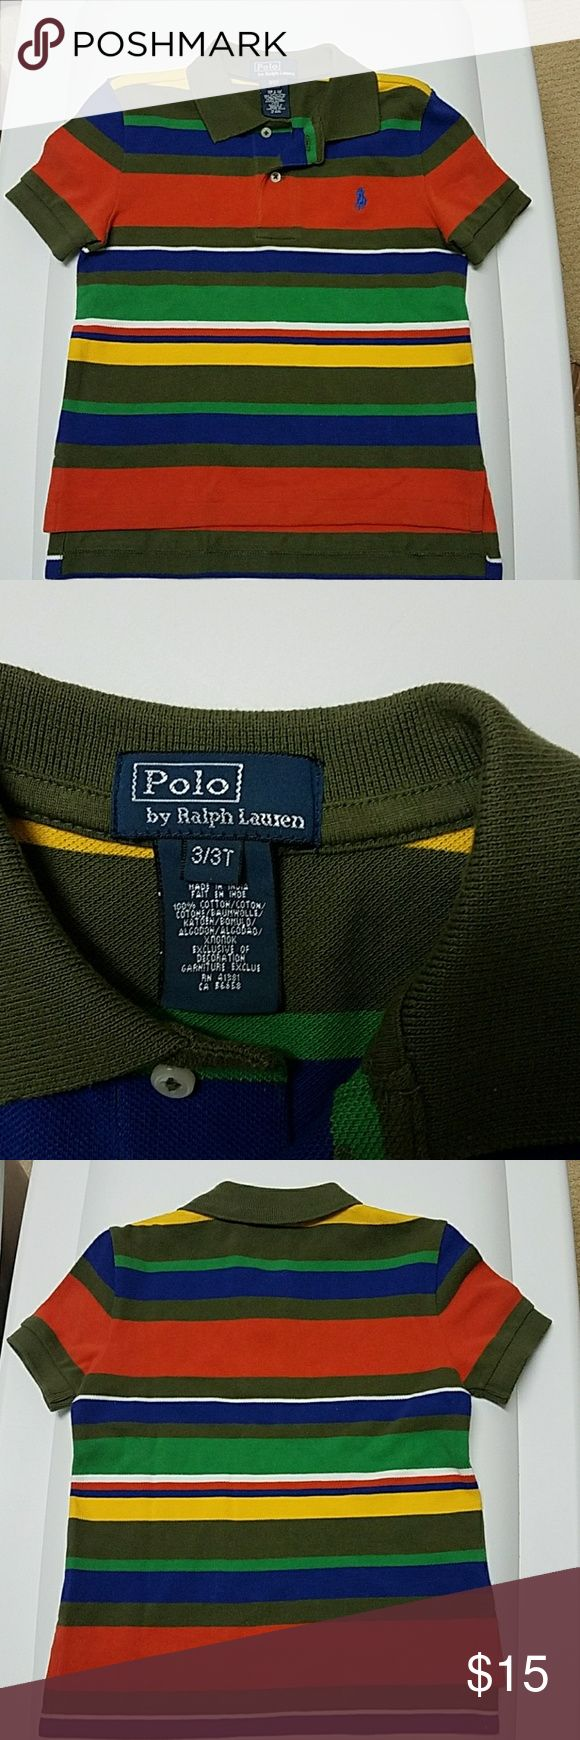 Polo by Ralph Lauren Striped Polo shirt 3T In great condition.  Worn a few times and has been washed. 100% cotton. Polo by Ralph Lauren Shirts & Tops Polos